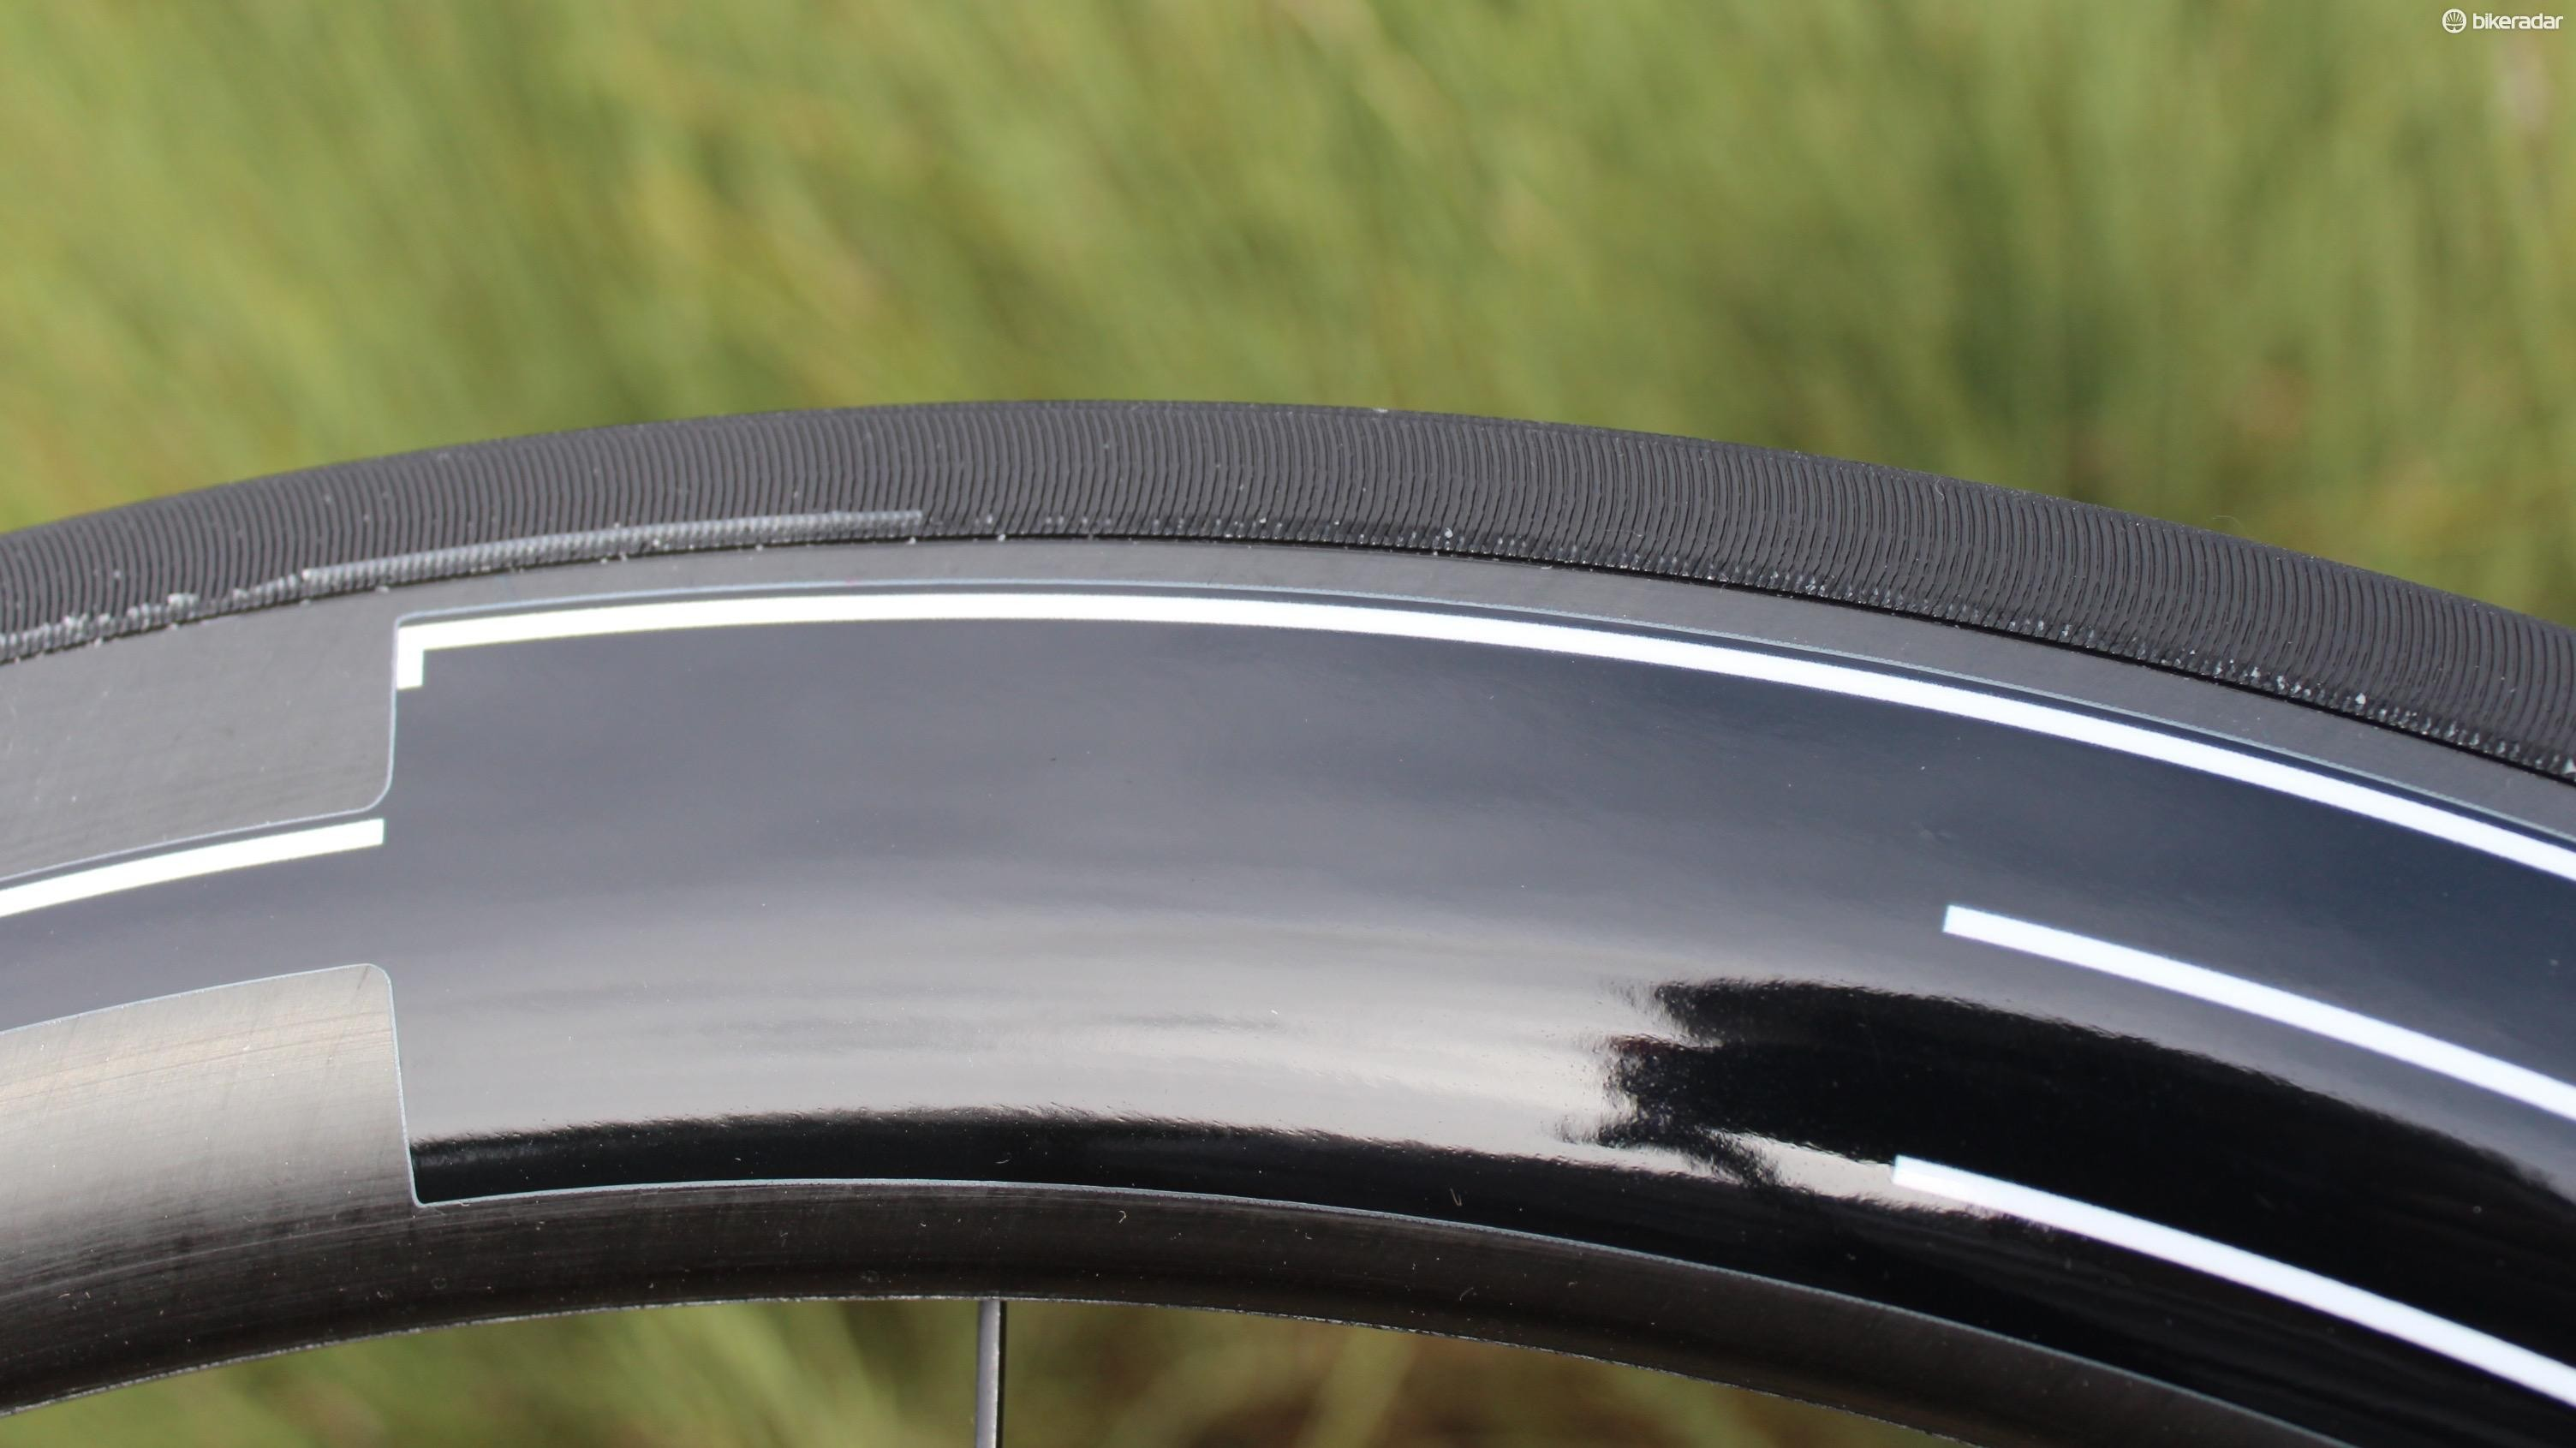 The machined brake surface makes stopping easy, in rain and on steep descents